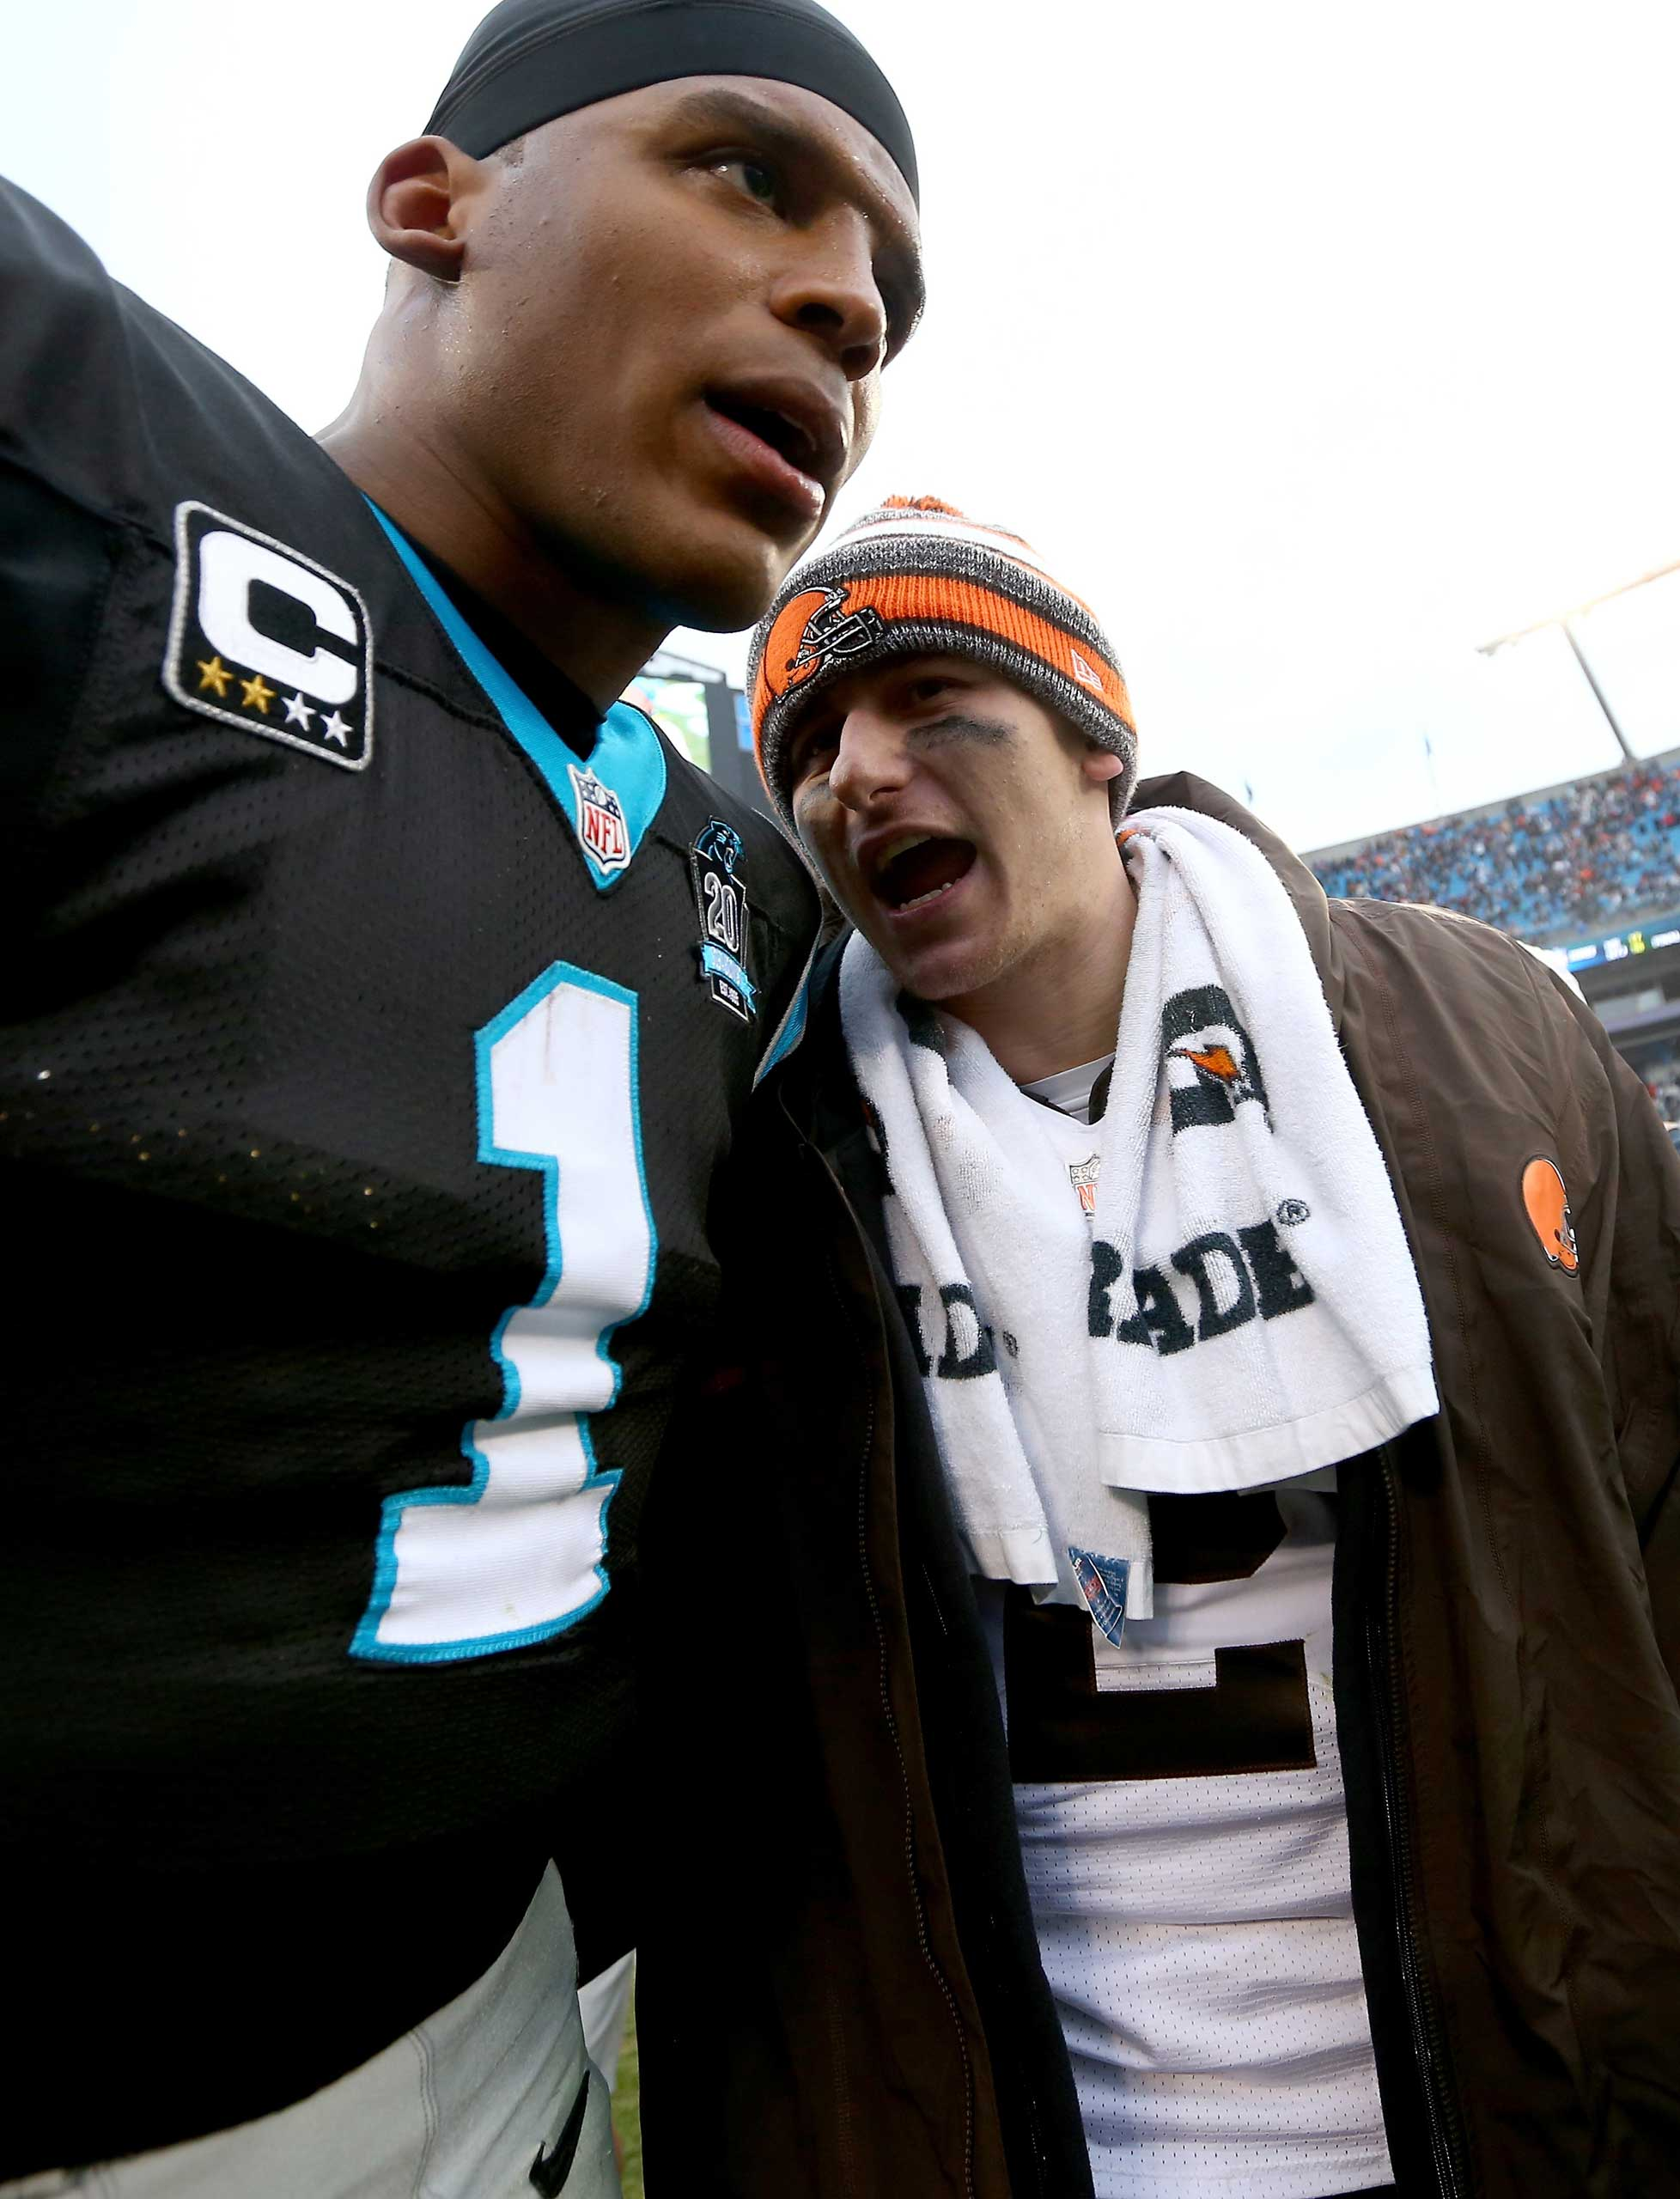 Cam Newton #1 of the Carolina Panthers and Johnny Manziel #2 of the Cleveland Browns exchange words after their game at Bank of America Stadium on Dec. 21, 2014 in Charlotte, North Carolina.